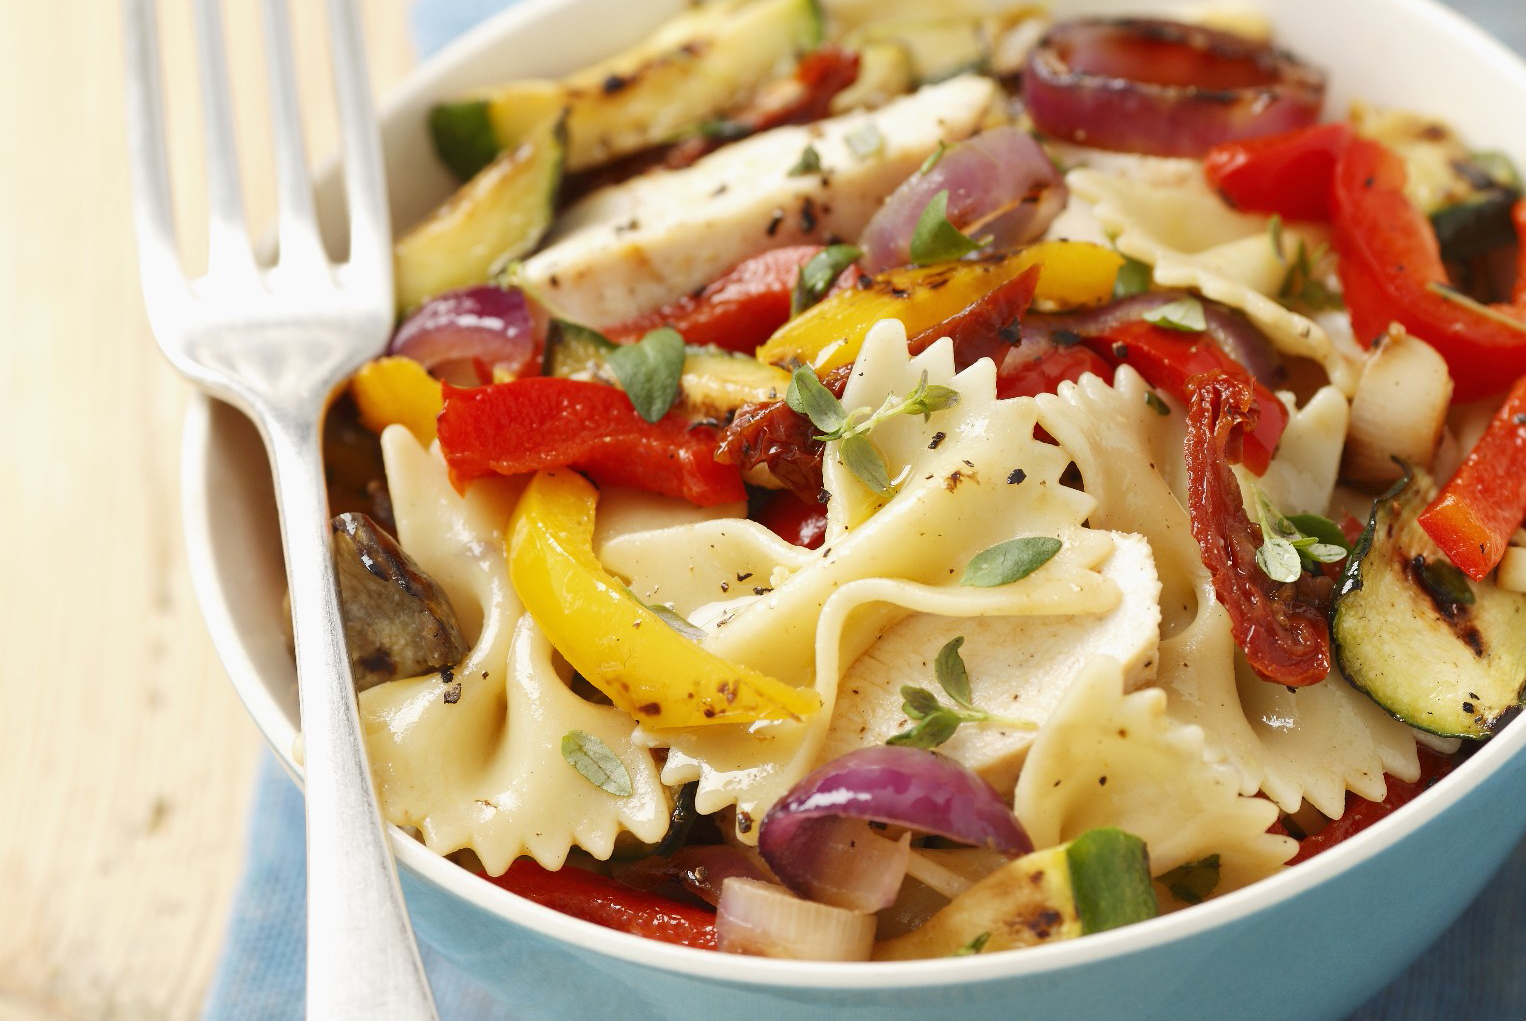 Chicken and Grilled Vegetable Pasta Salad Image 1